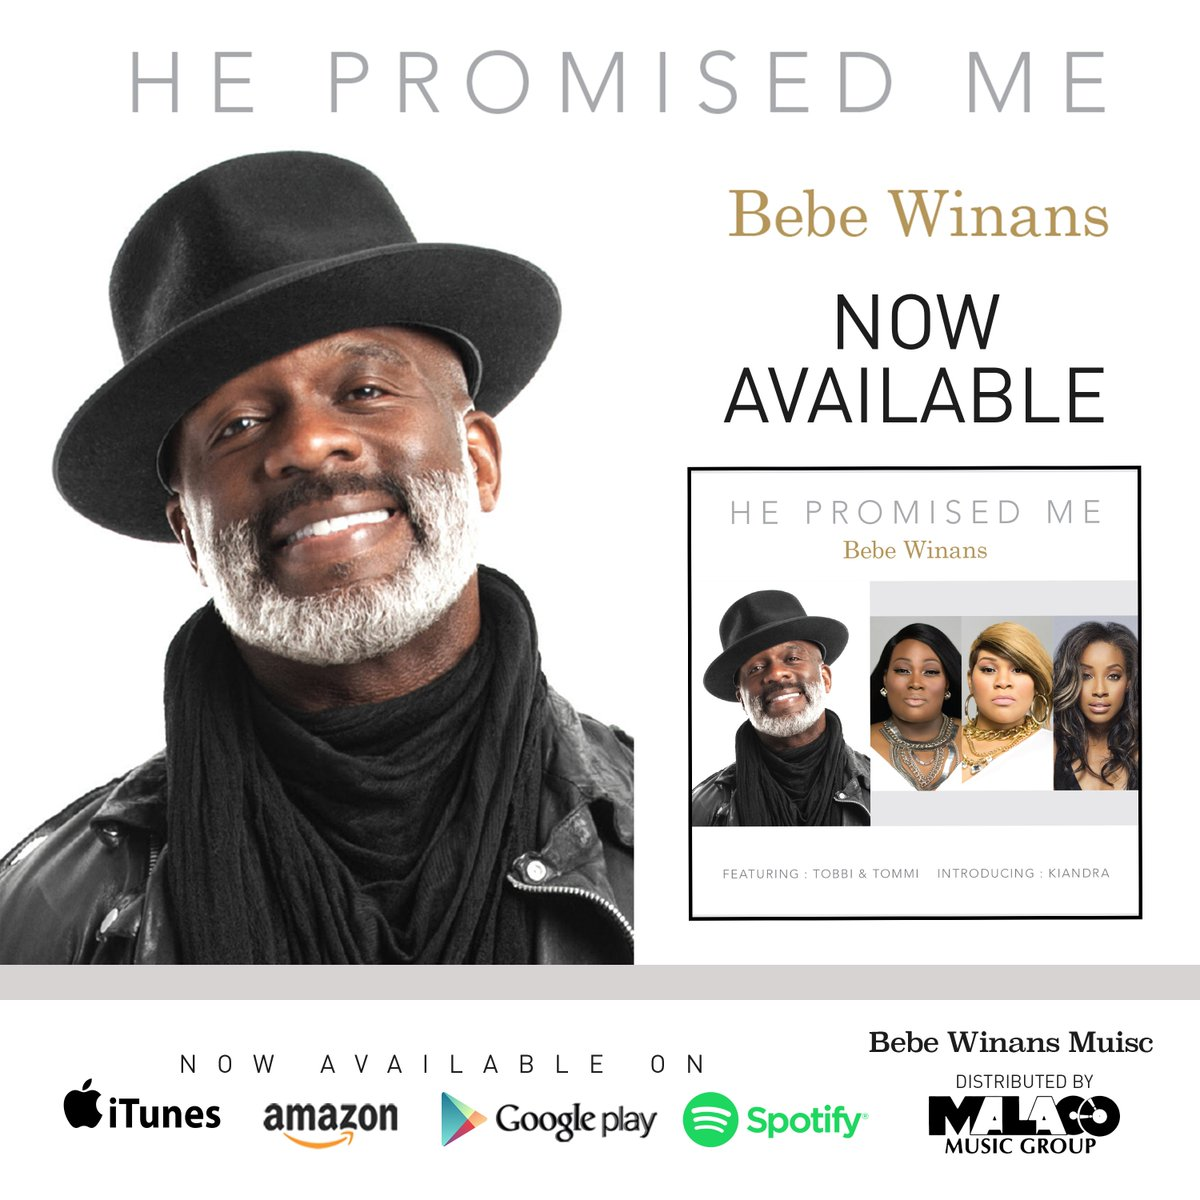 this song bebe winans mp3 free download